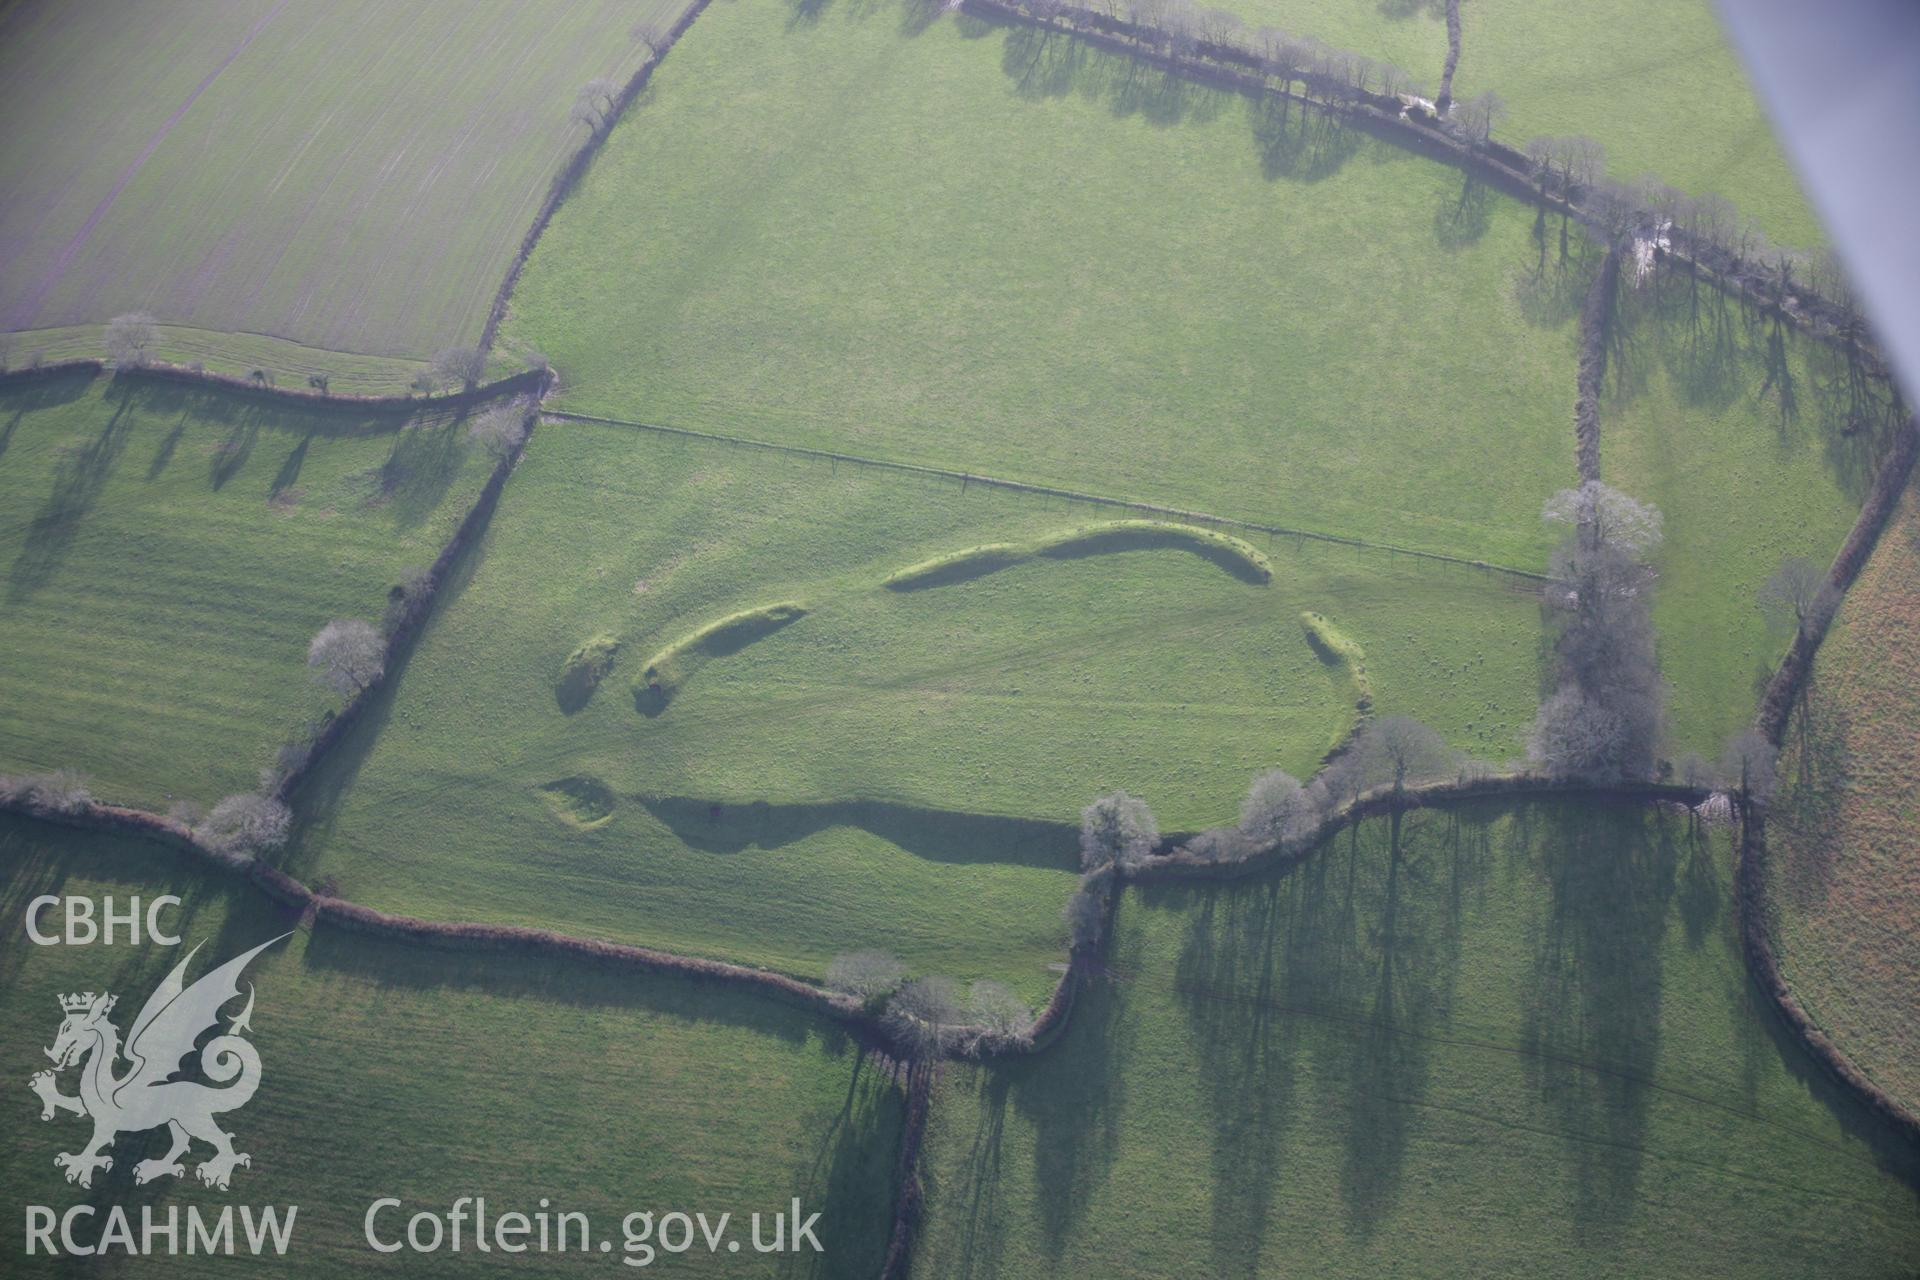 RCAHMW colour oblique aerial photograph of Molleston Back Hillfort Enclosure, viewed from the north. Taken on 11 January 2006 by Toby Driver.